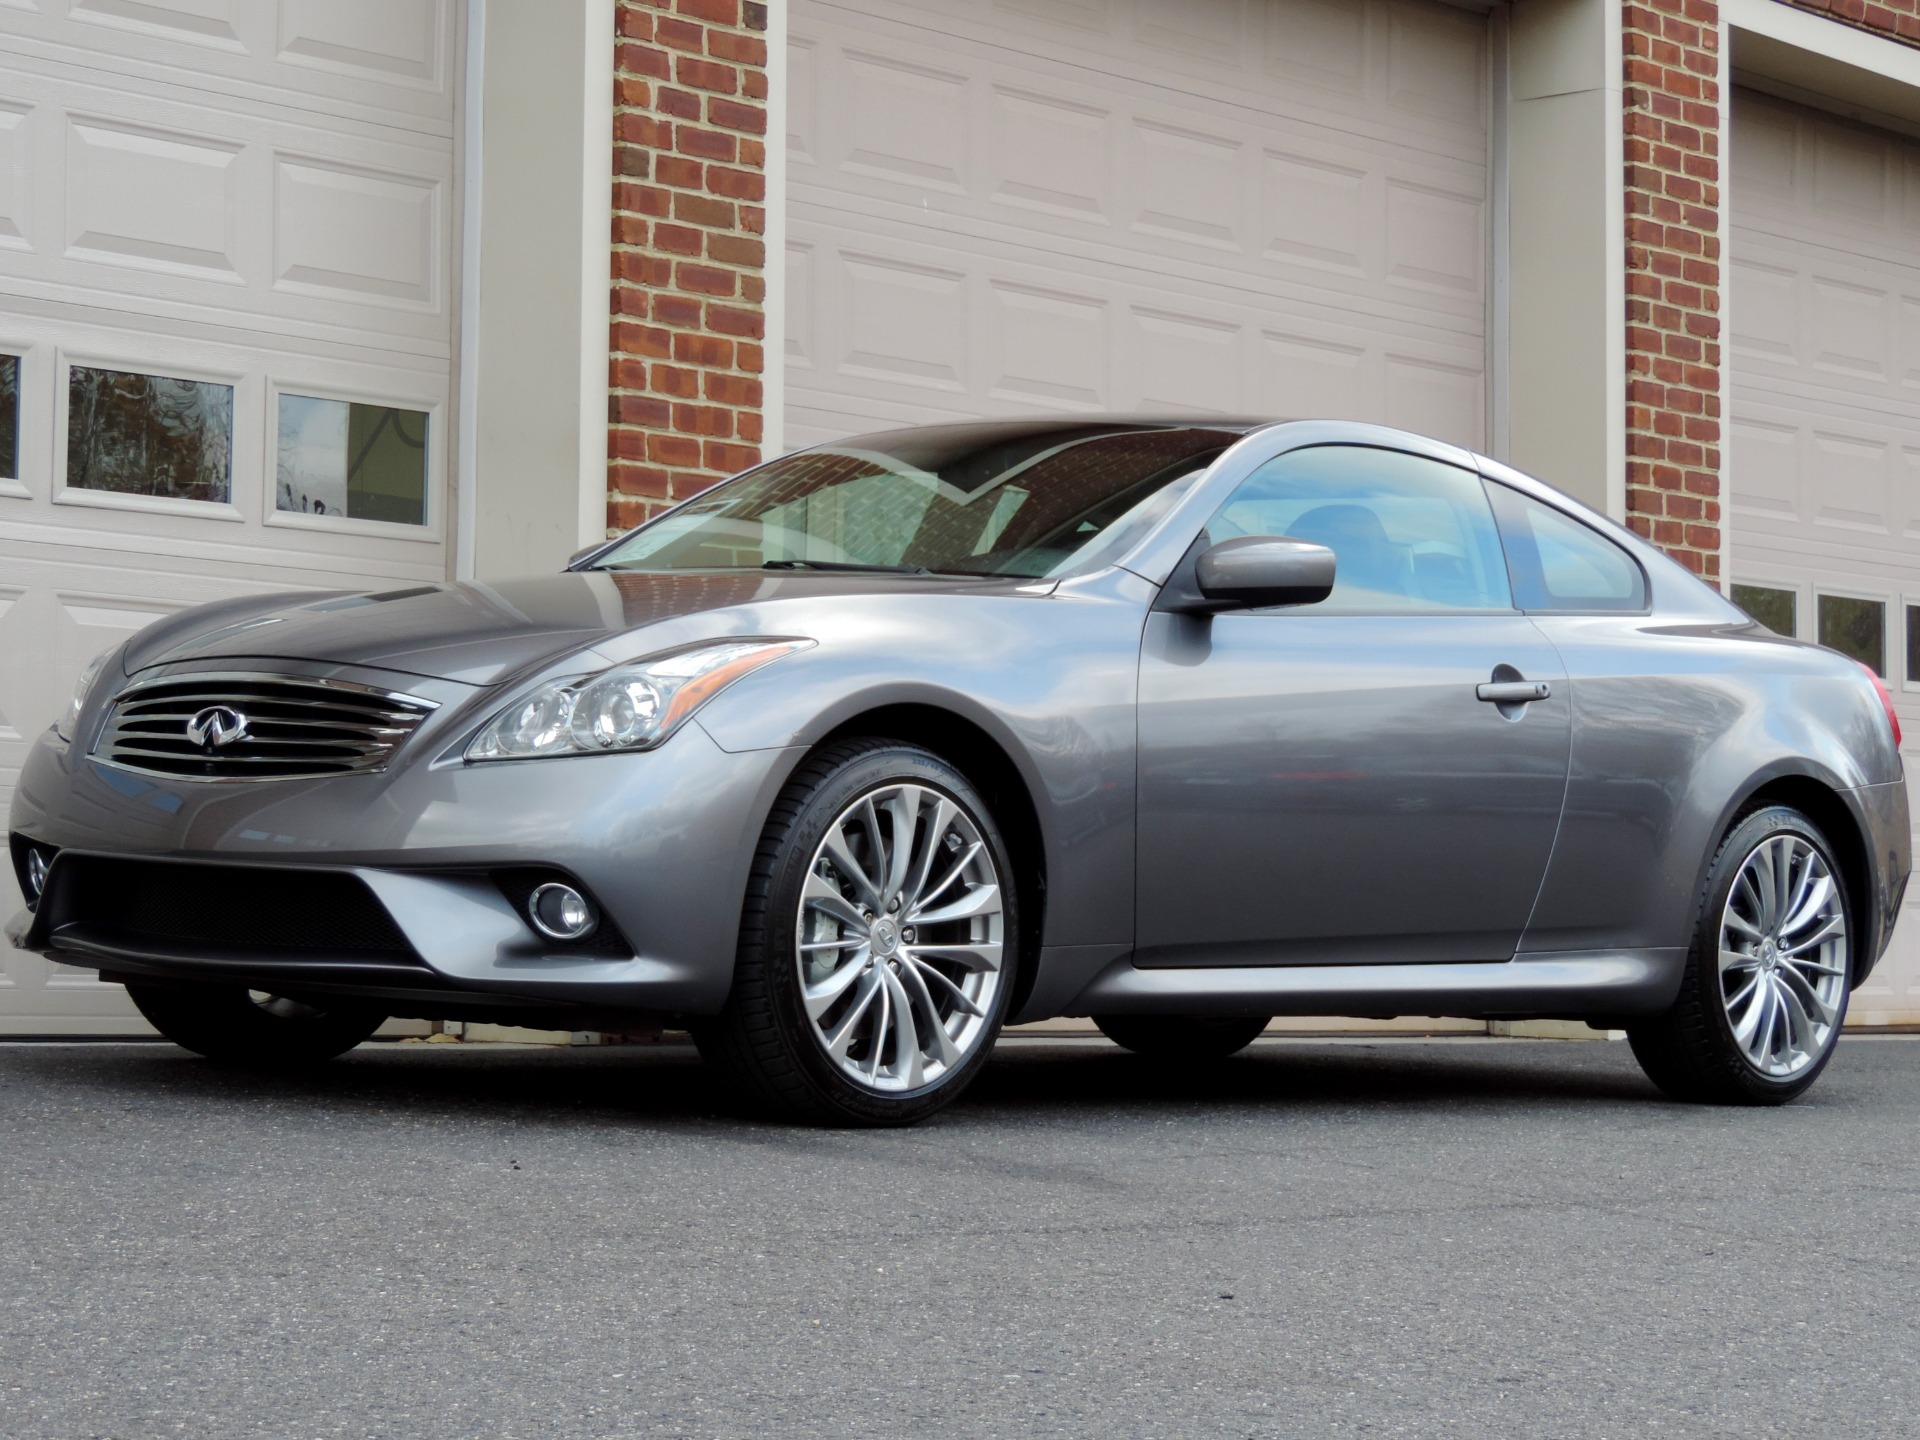 2012 Infiniti G37 Coupe X Sport Stock 472930 For Sale Manual Guide